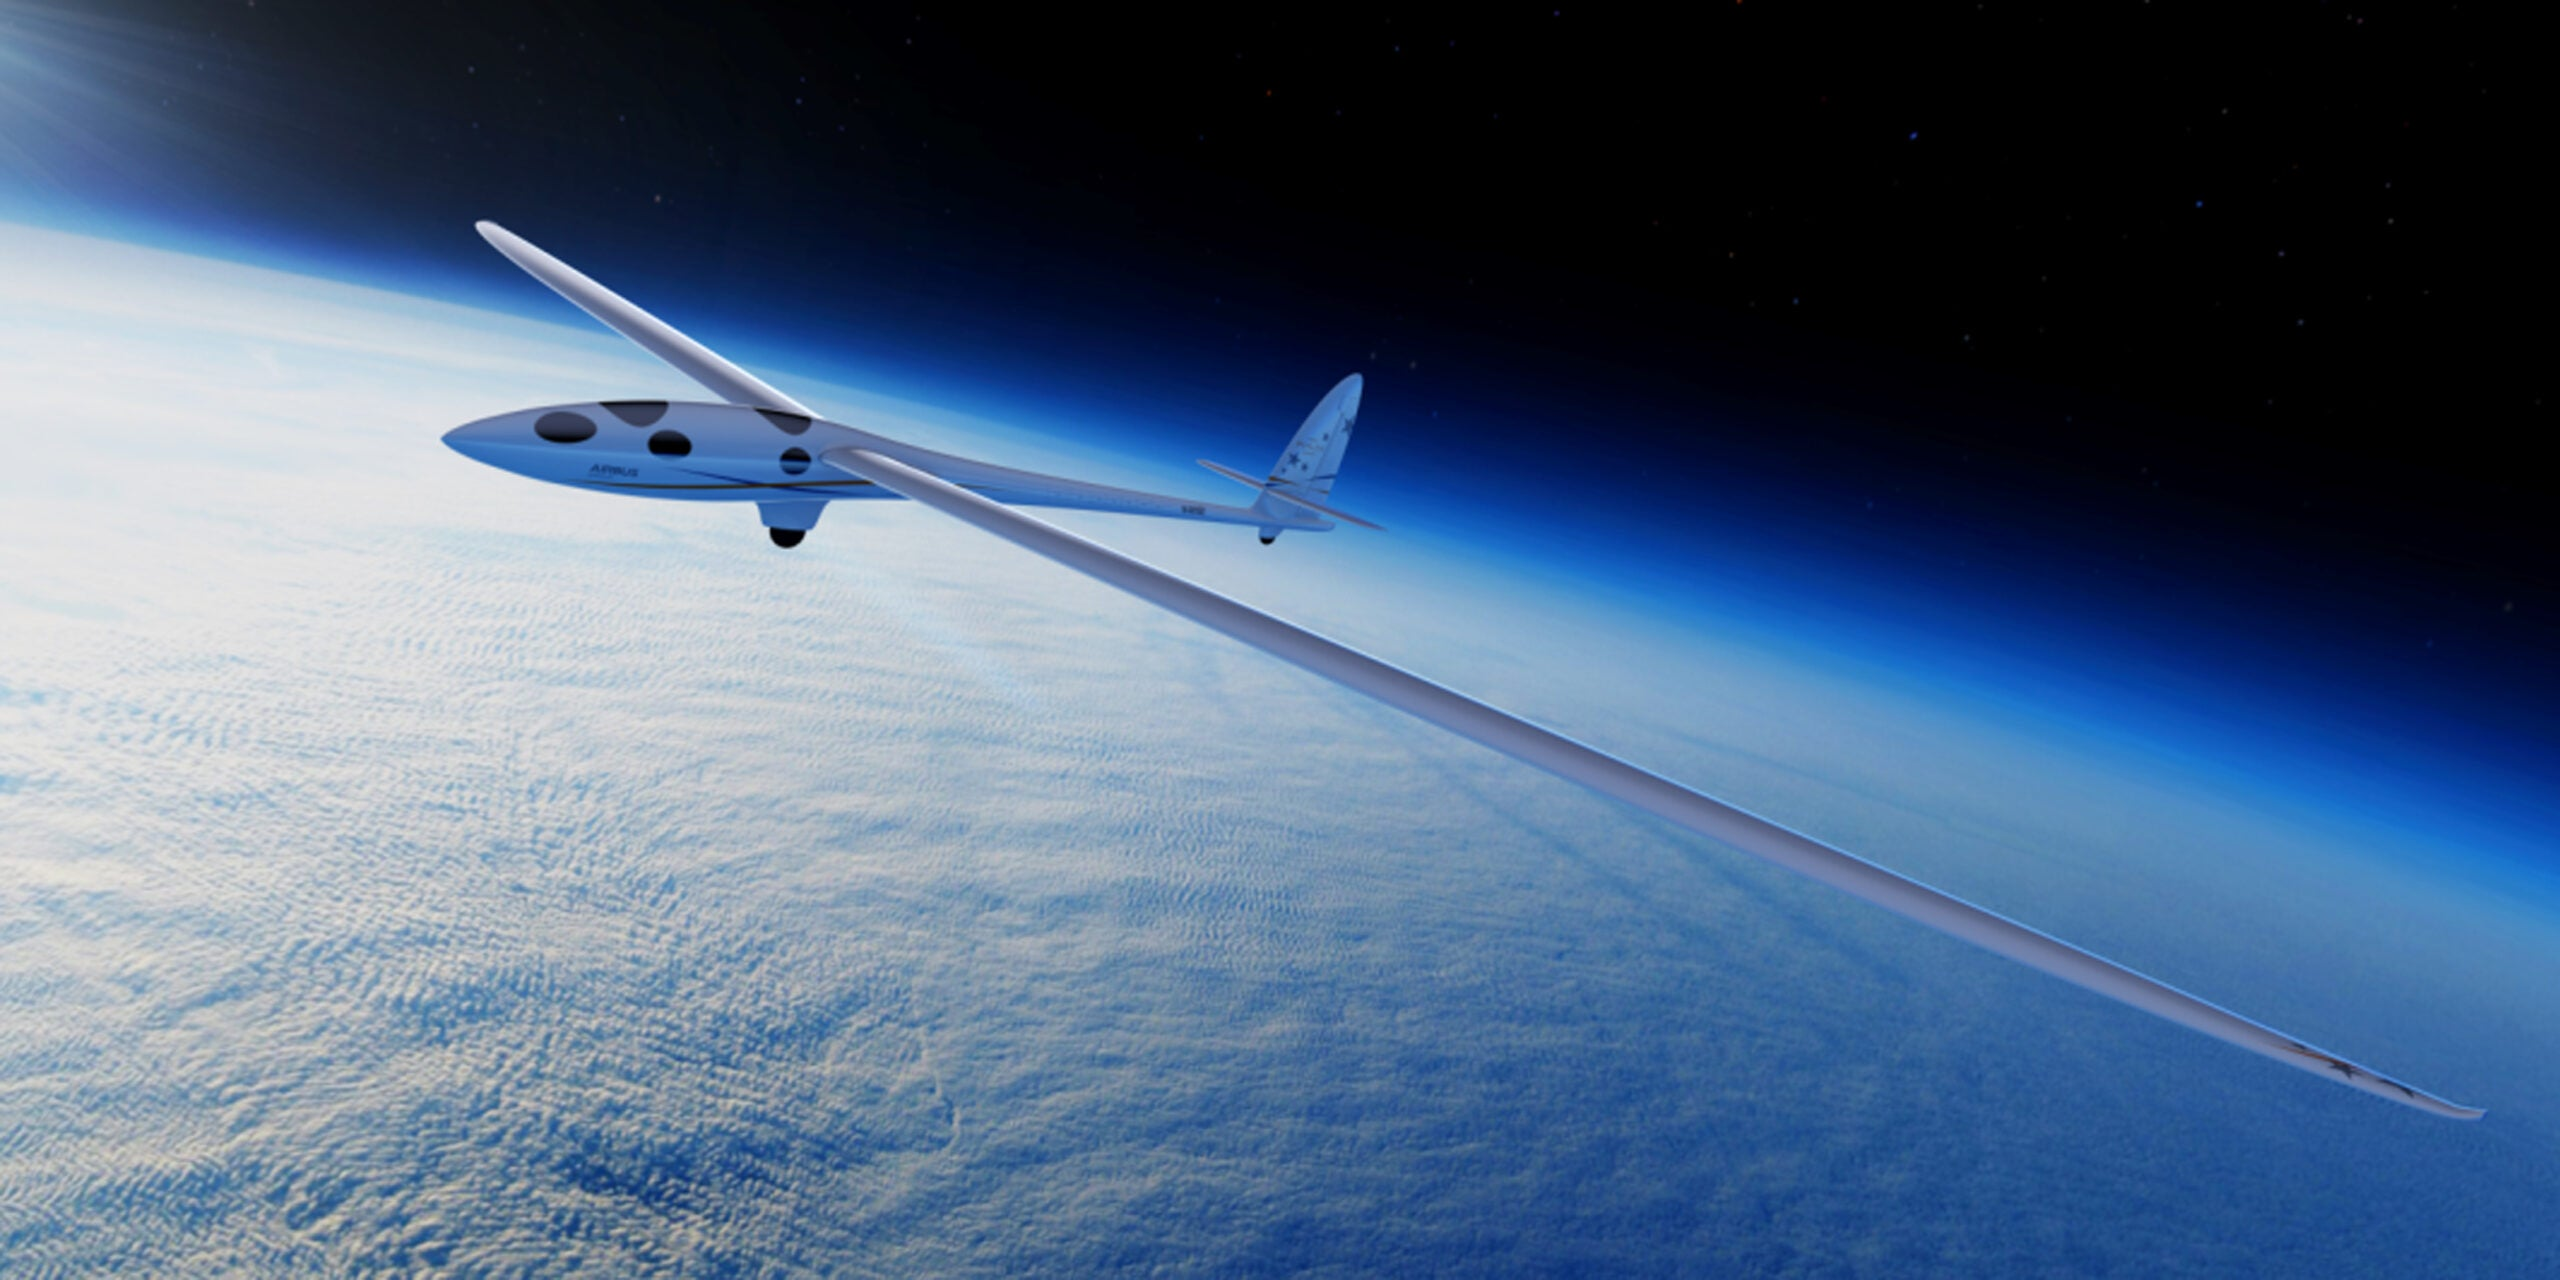 This Glider Will Study Weather At The Edge Of Space